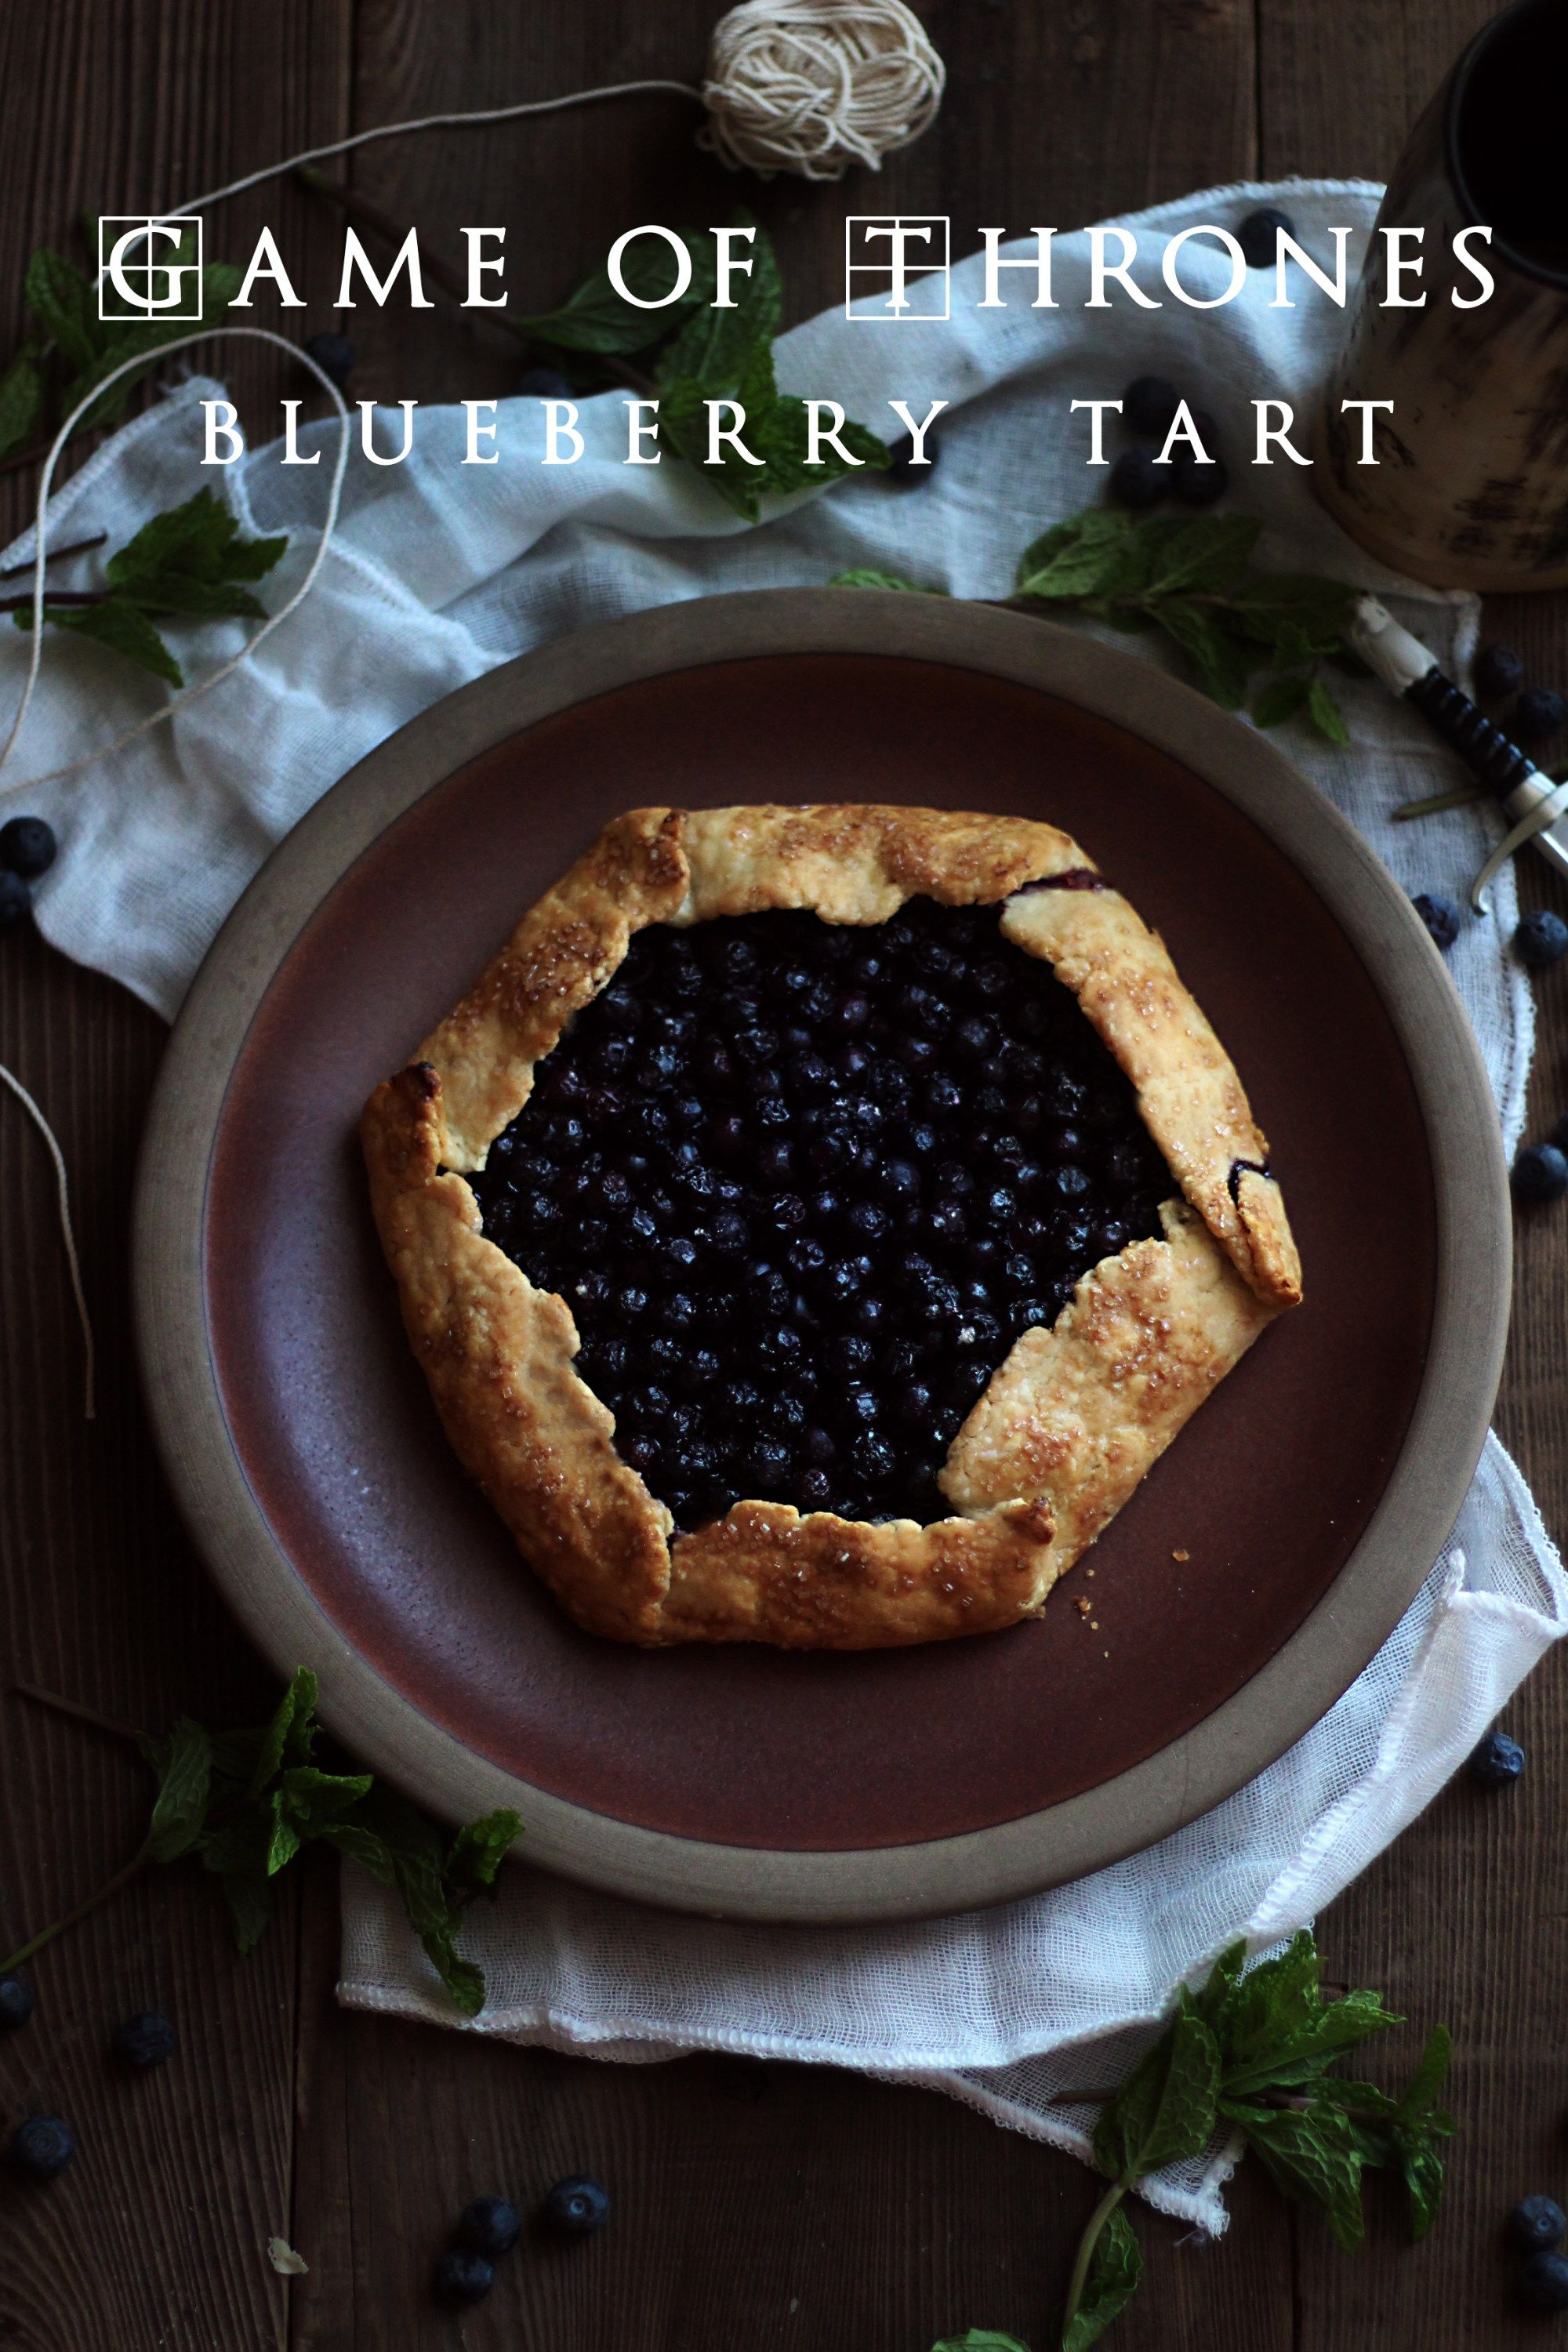 Game of Thrones: Sam's Blueberry Tart